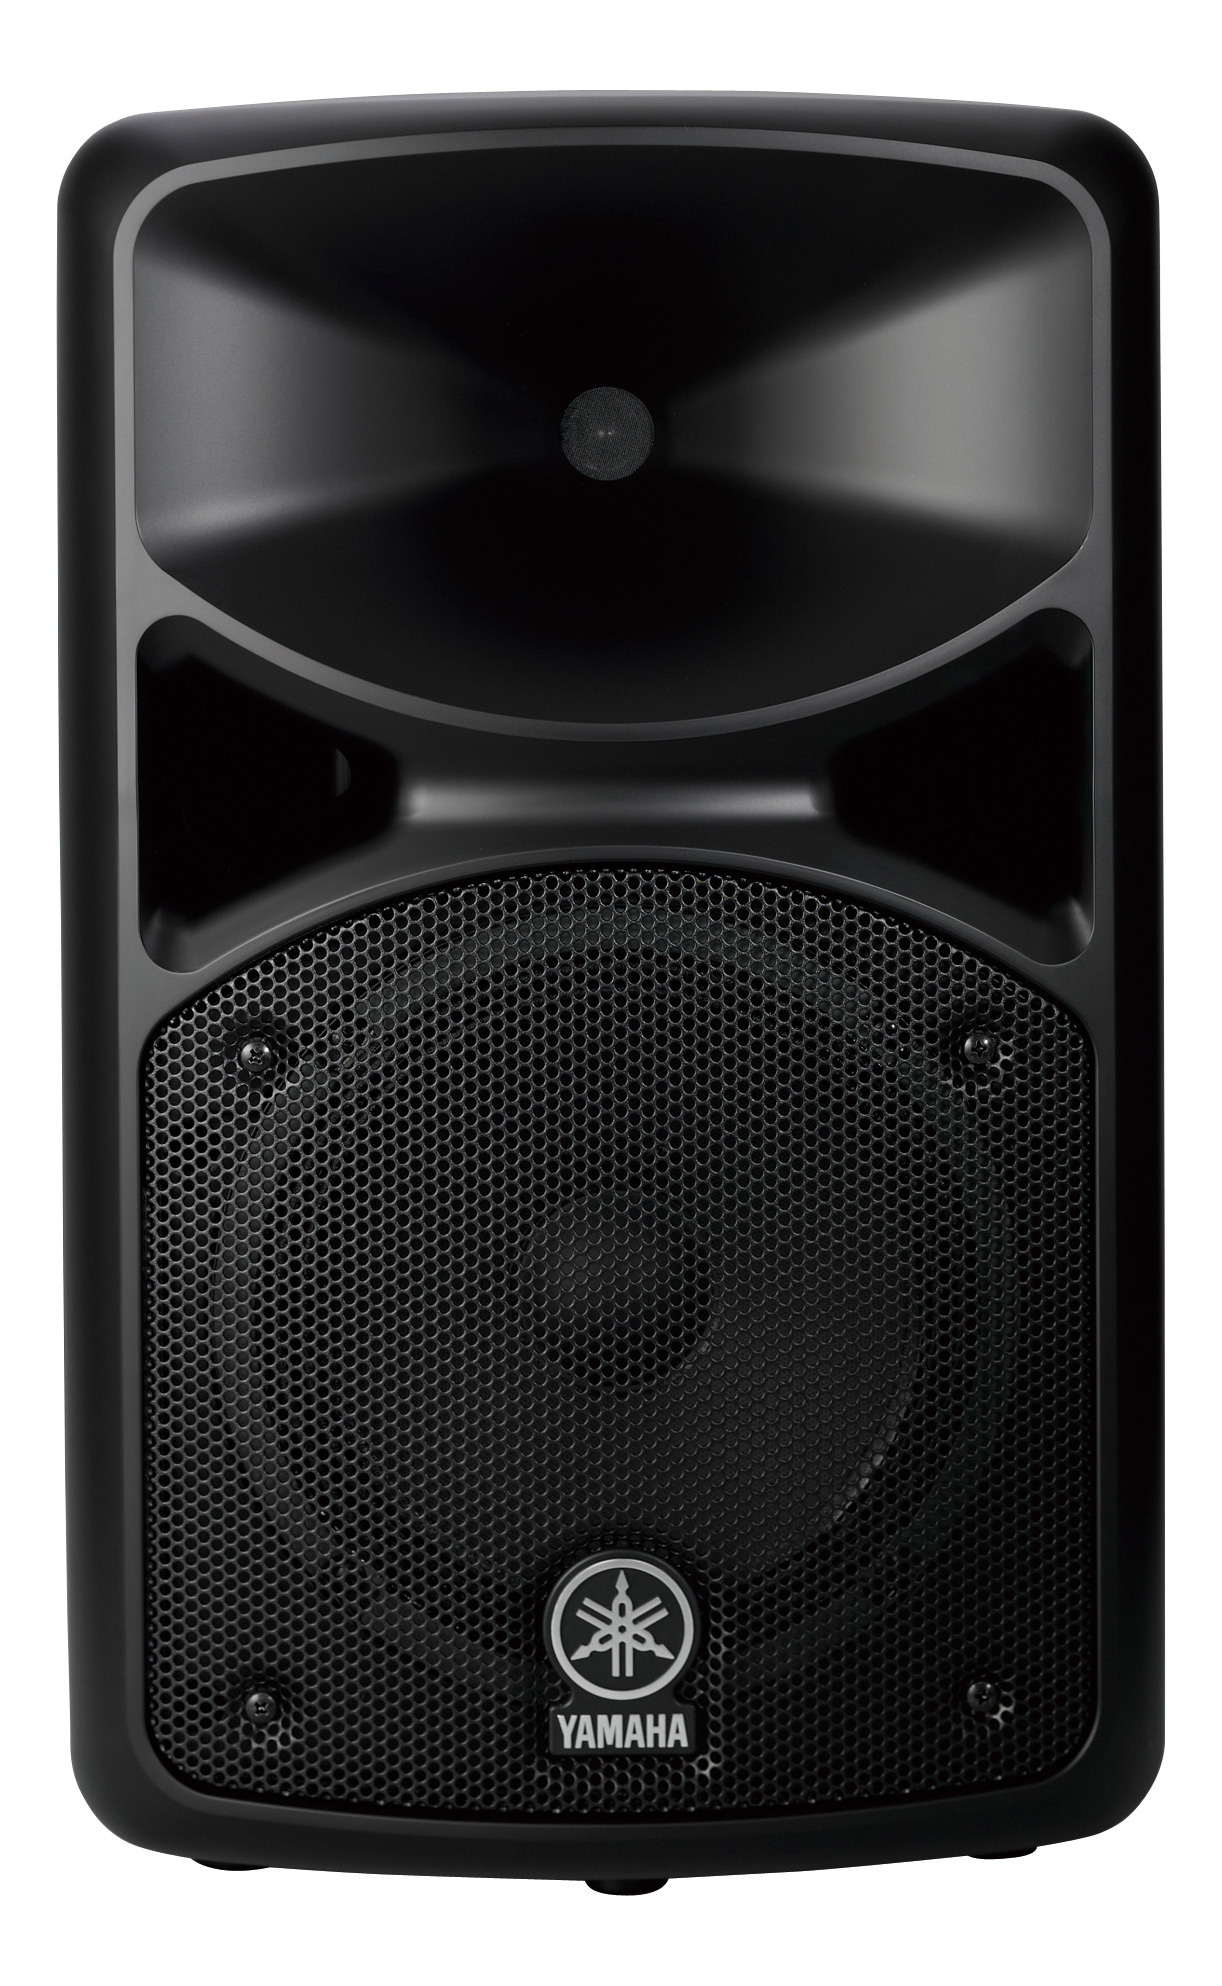 Yamaha stagepas 400i 8 input stereo powered portable pa system for Yamaha stagepas 400i price